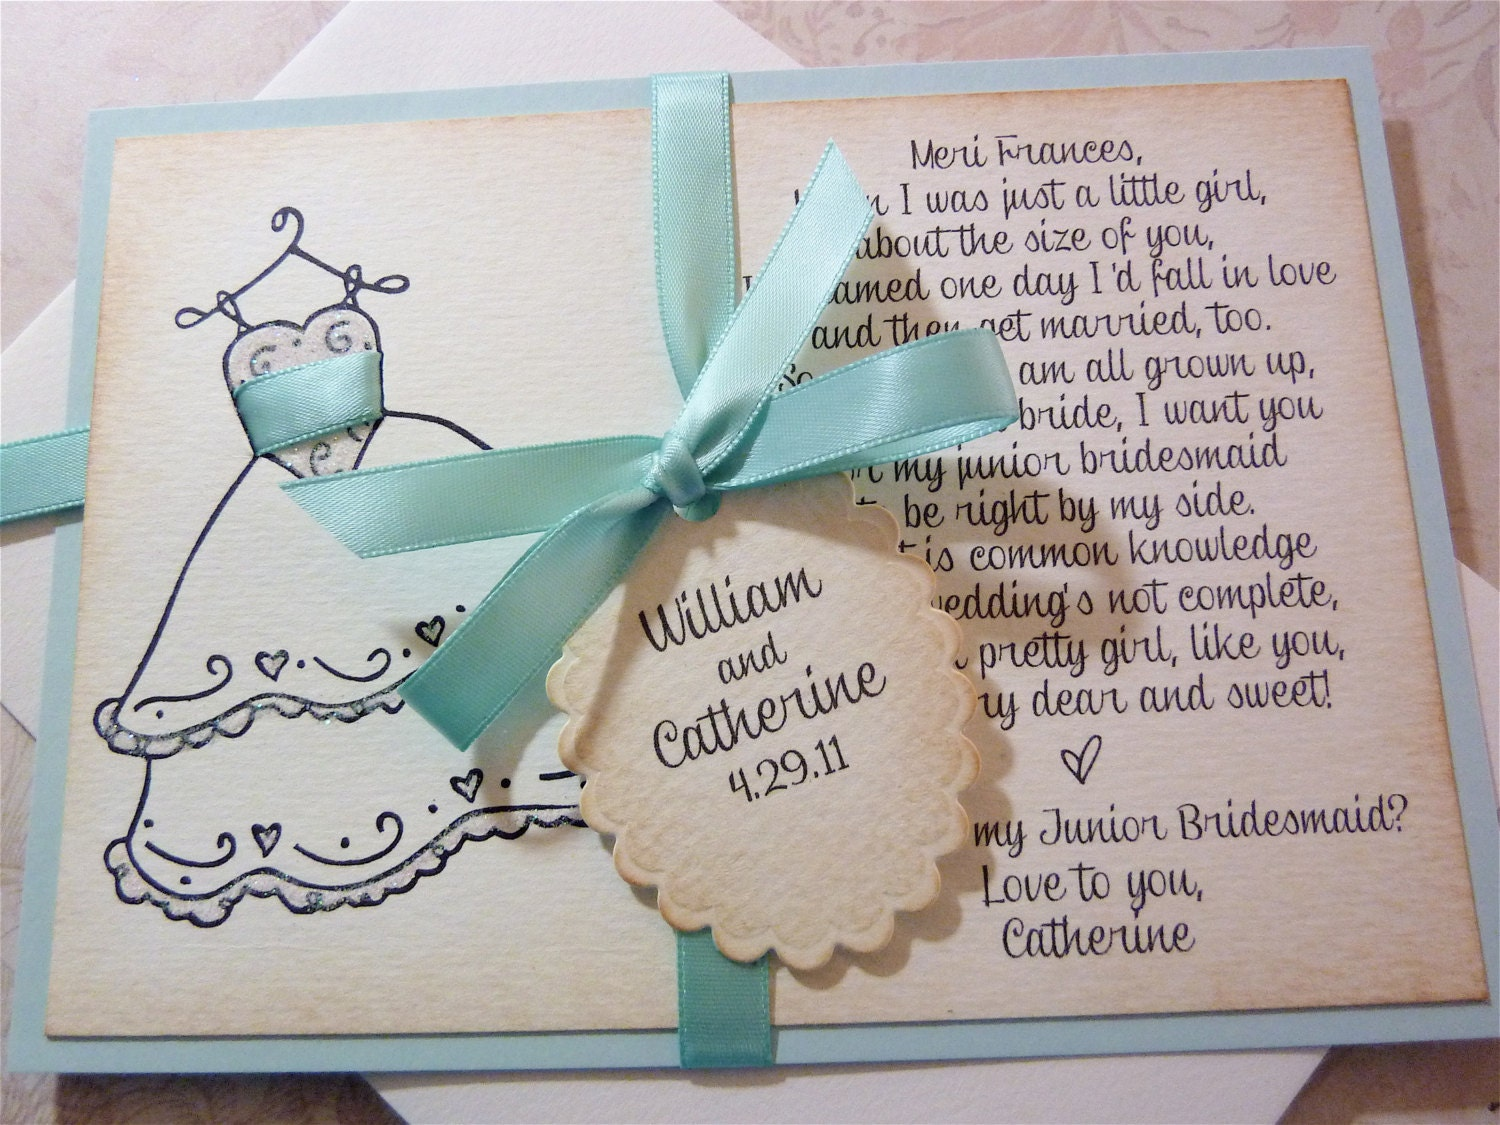 Maid Of Honor Invitation Wording with amazing invitations design